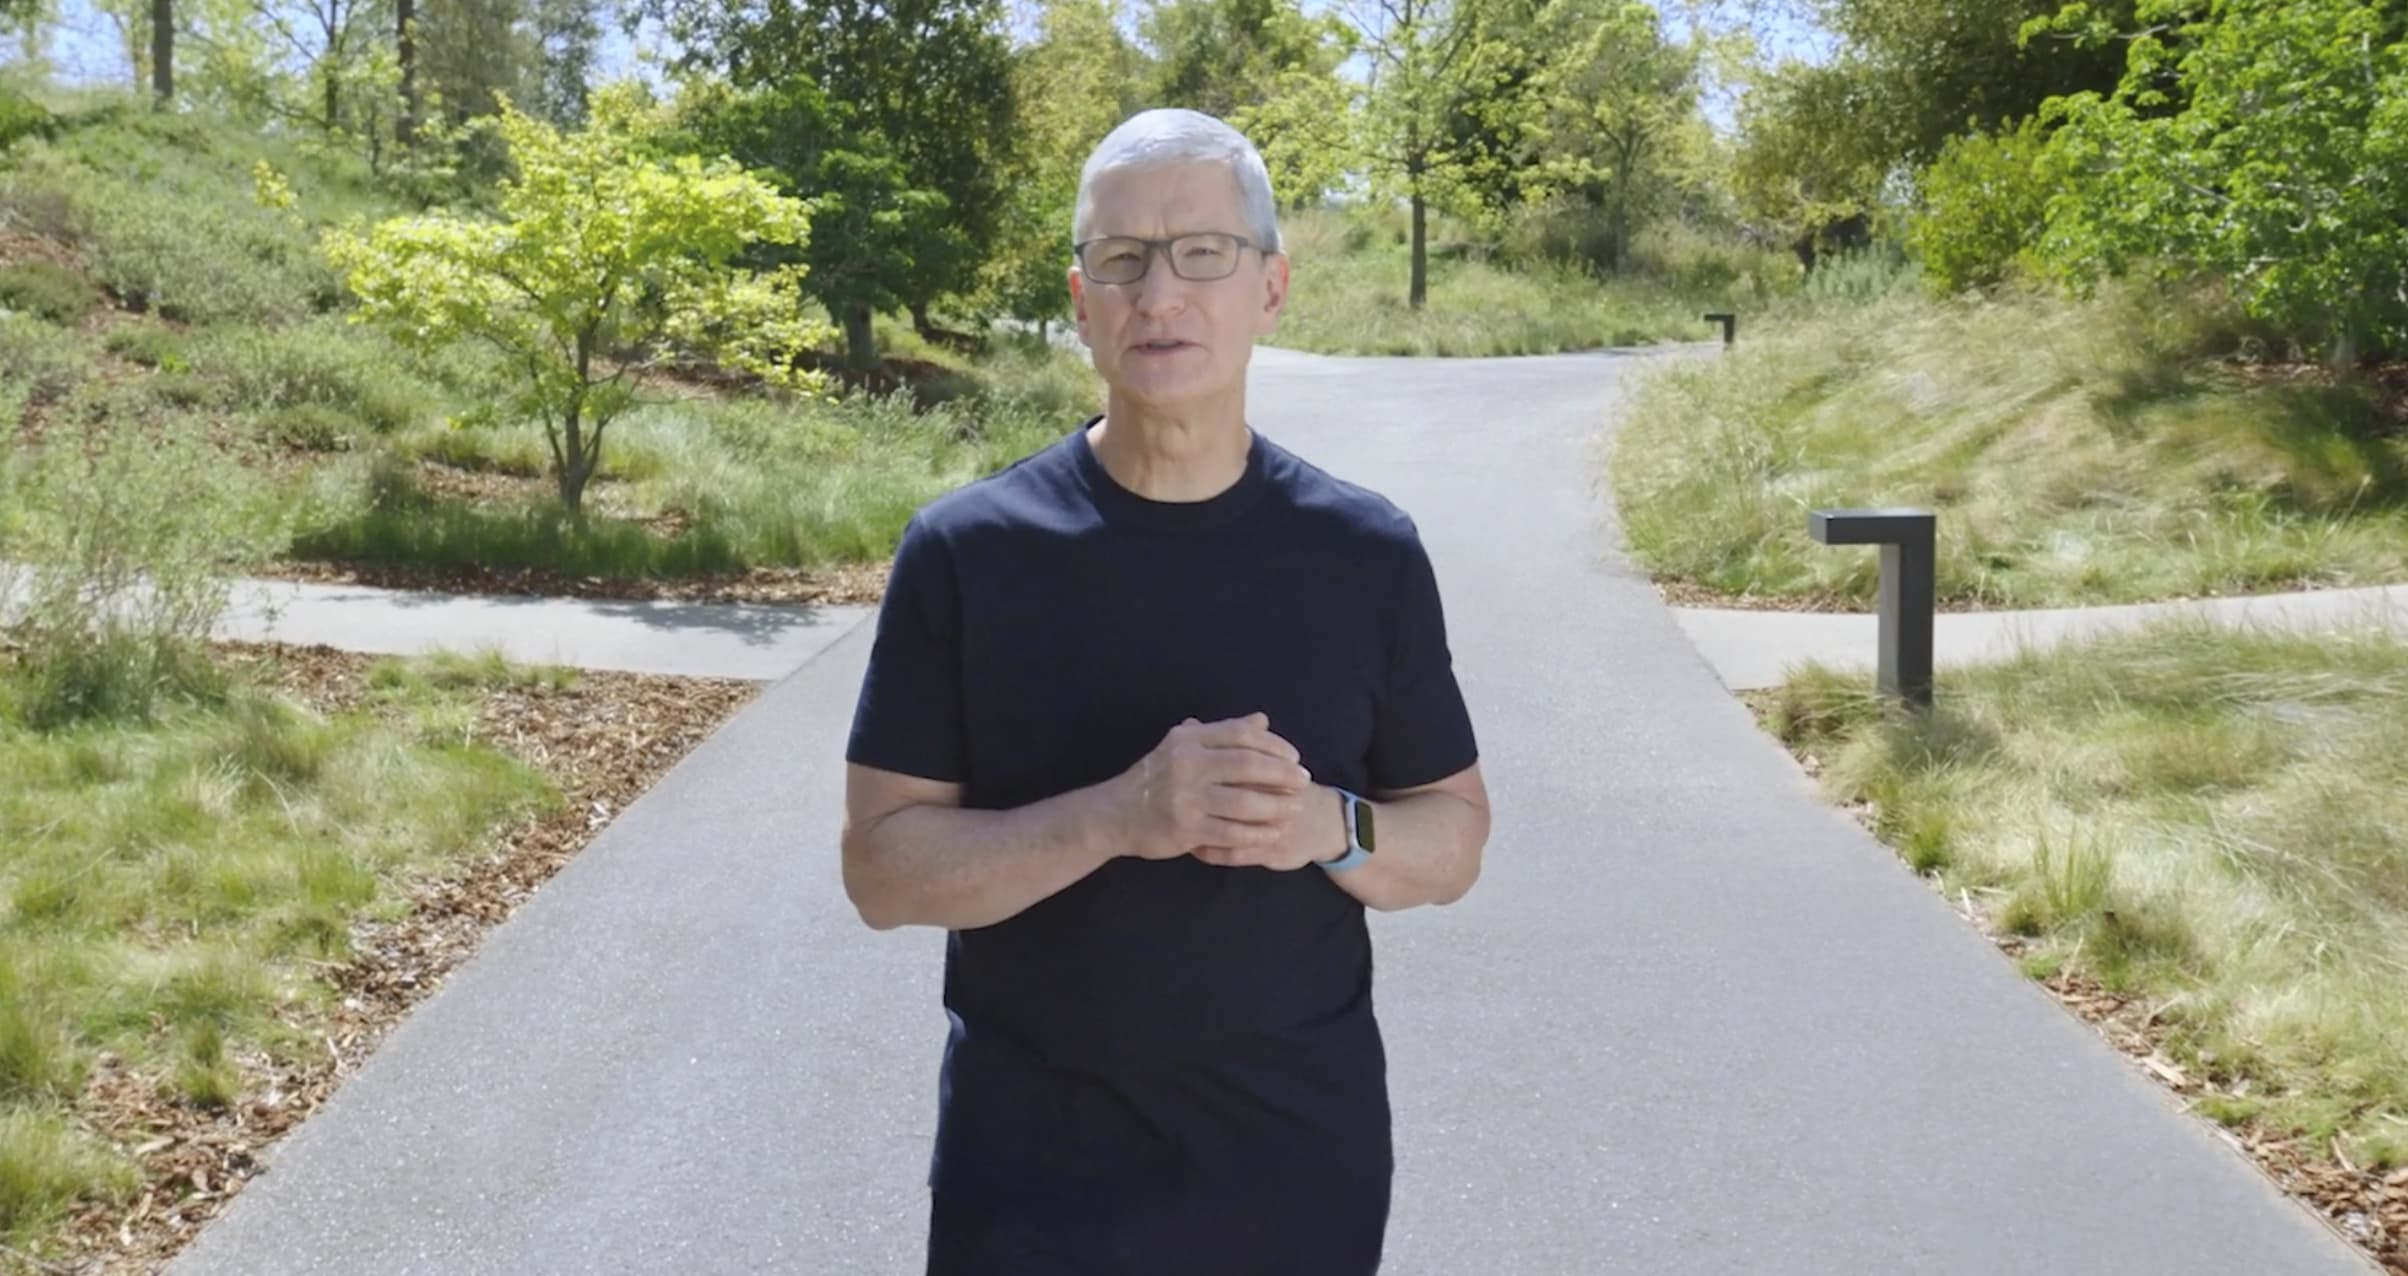 Apple reports another blowout quarter with sales up 54%, authorizes $90 billion in share buybacks | Latest News Live | Find the all top headlines, breaking news for free online April 29, 2021